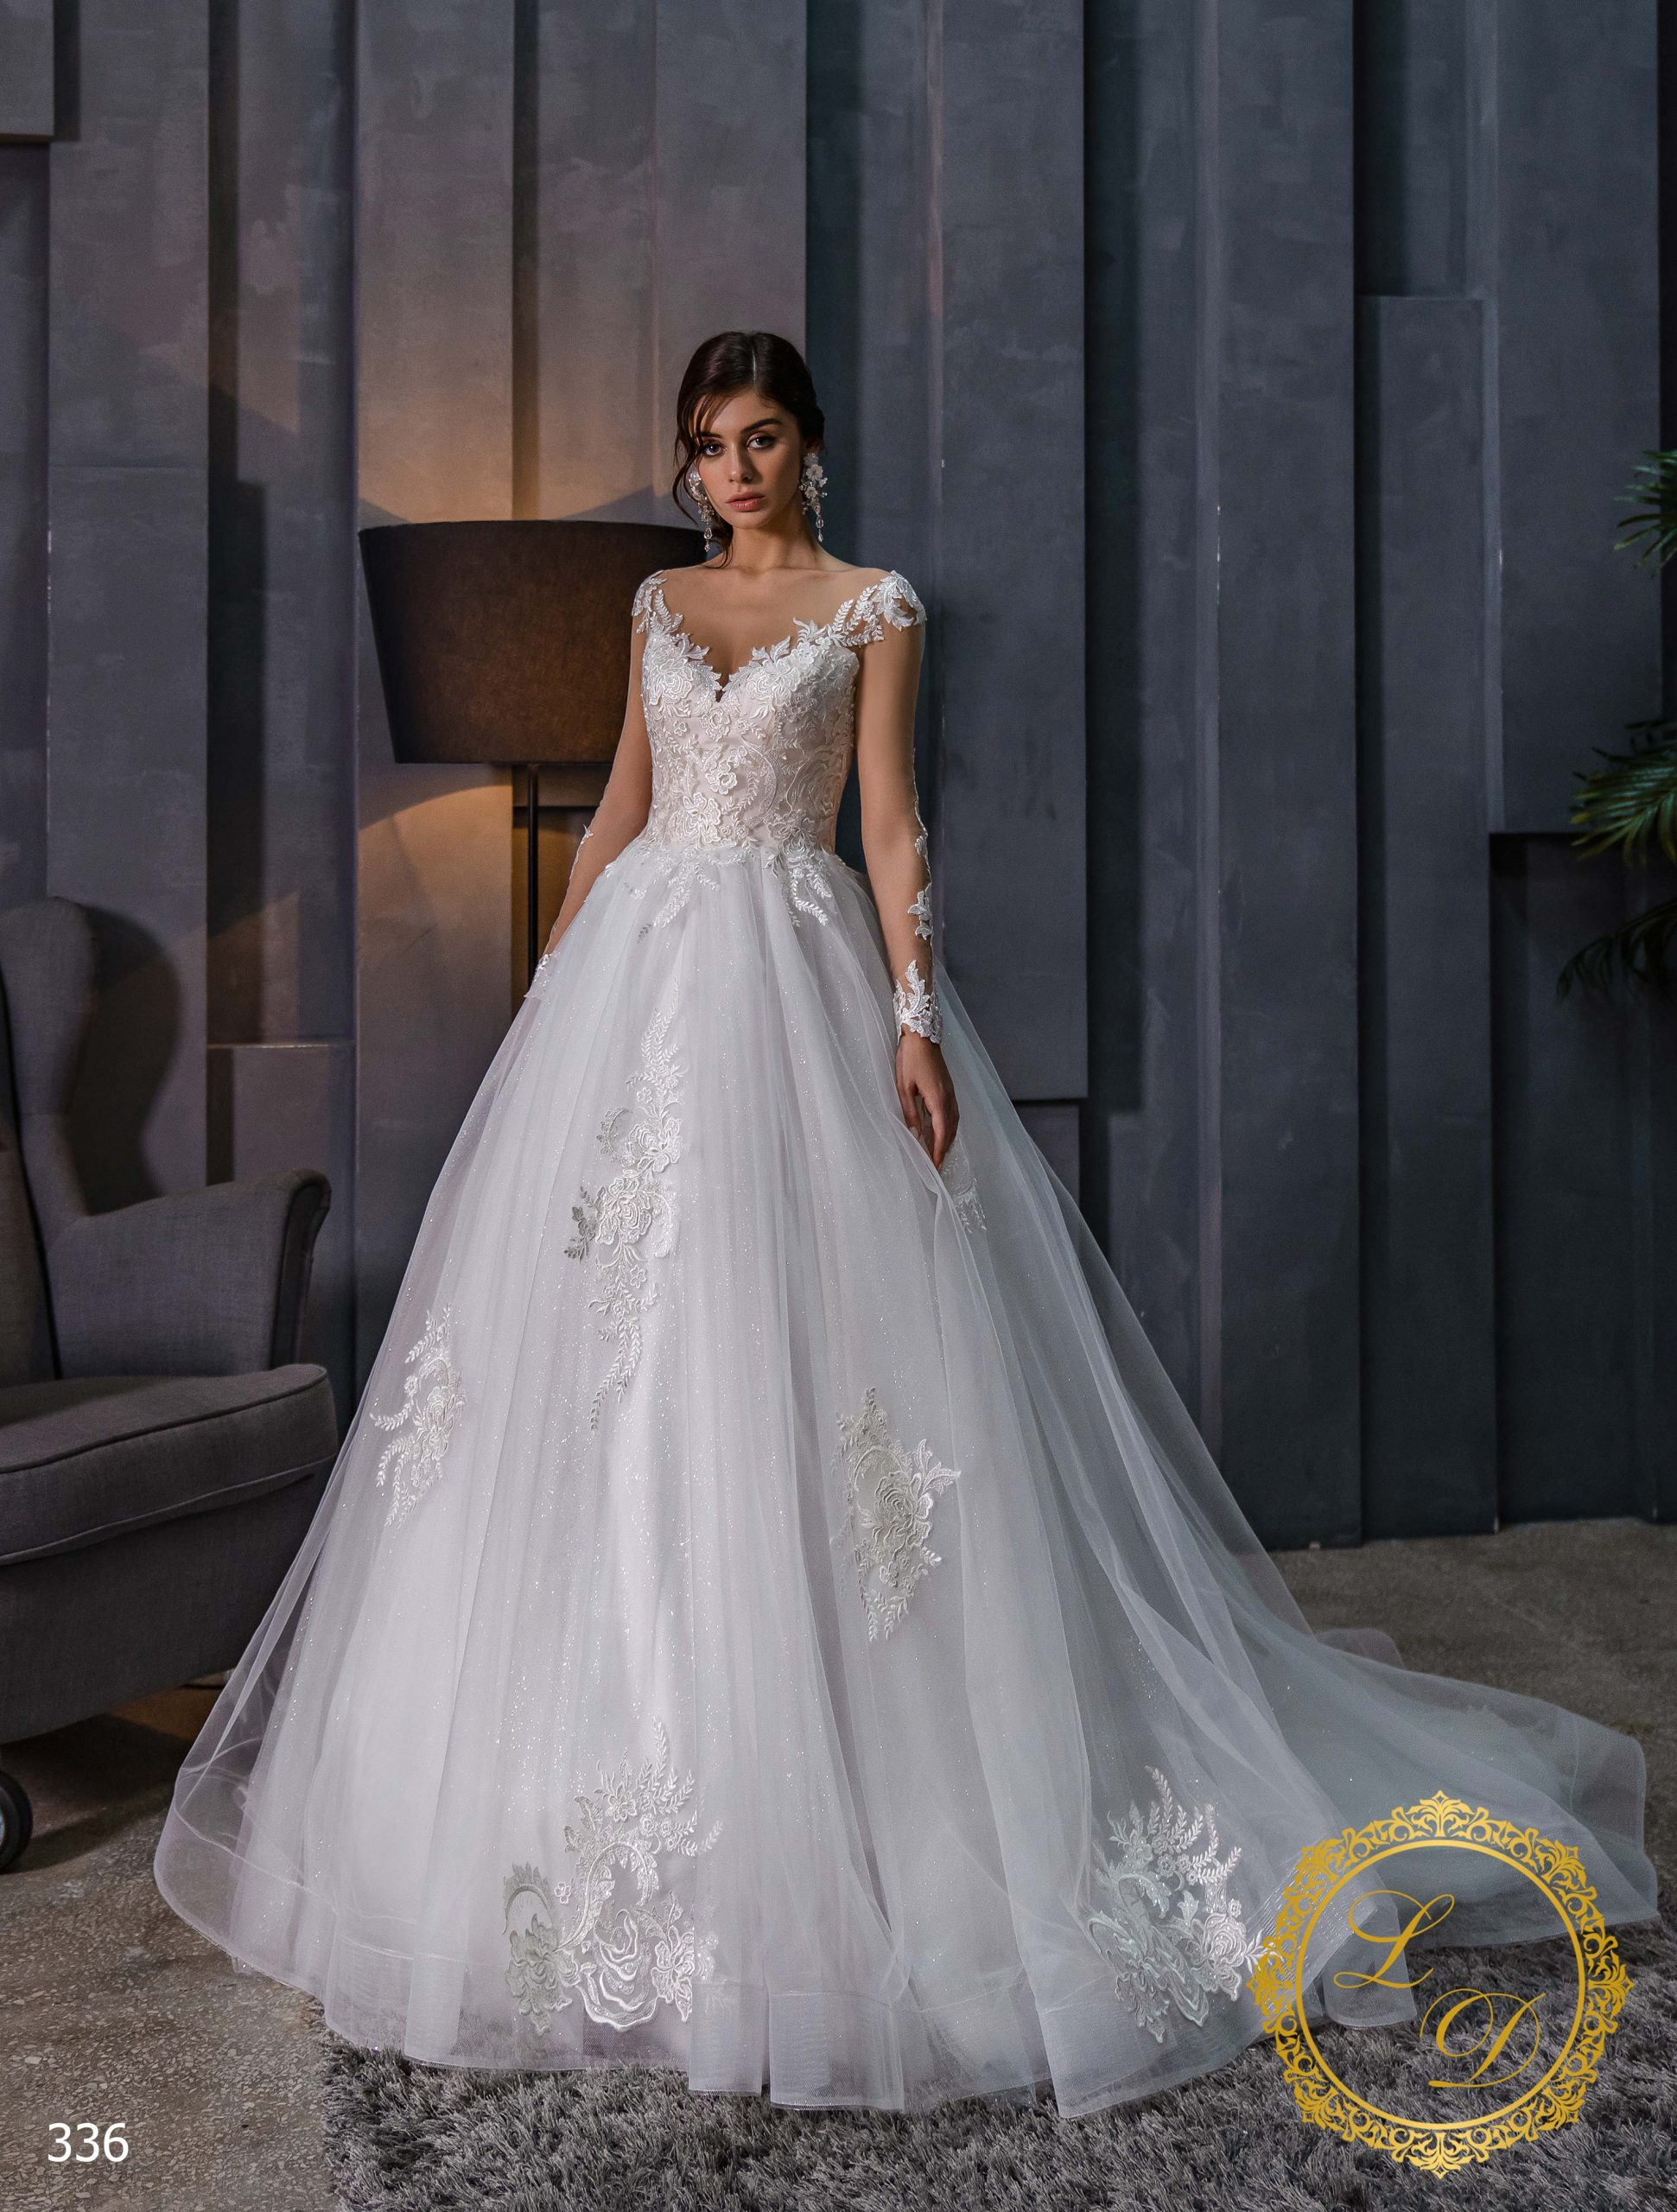 Wedding dress Lady Di 336-1